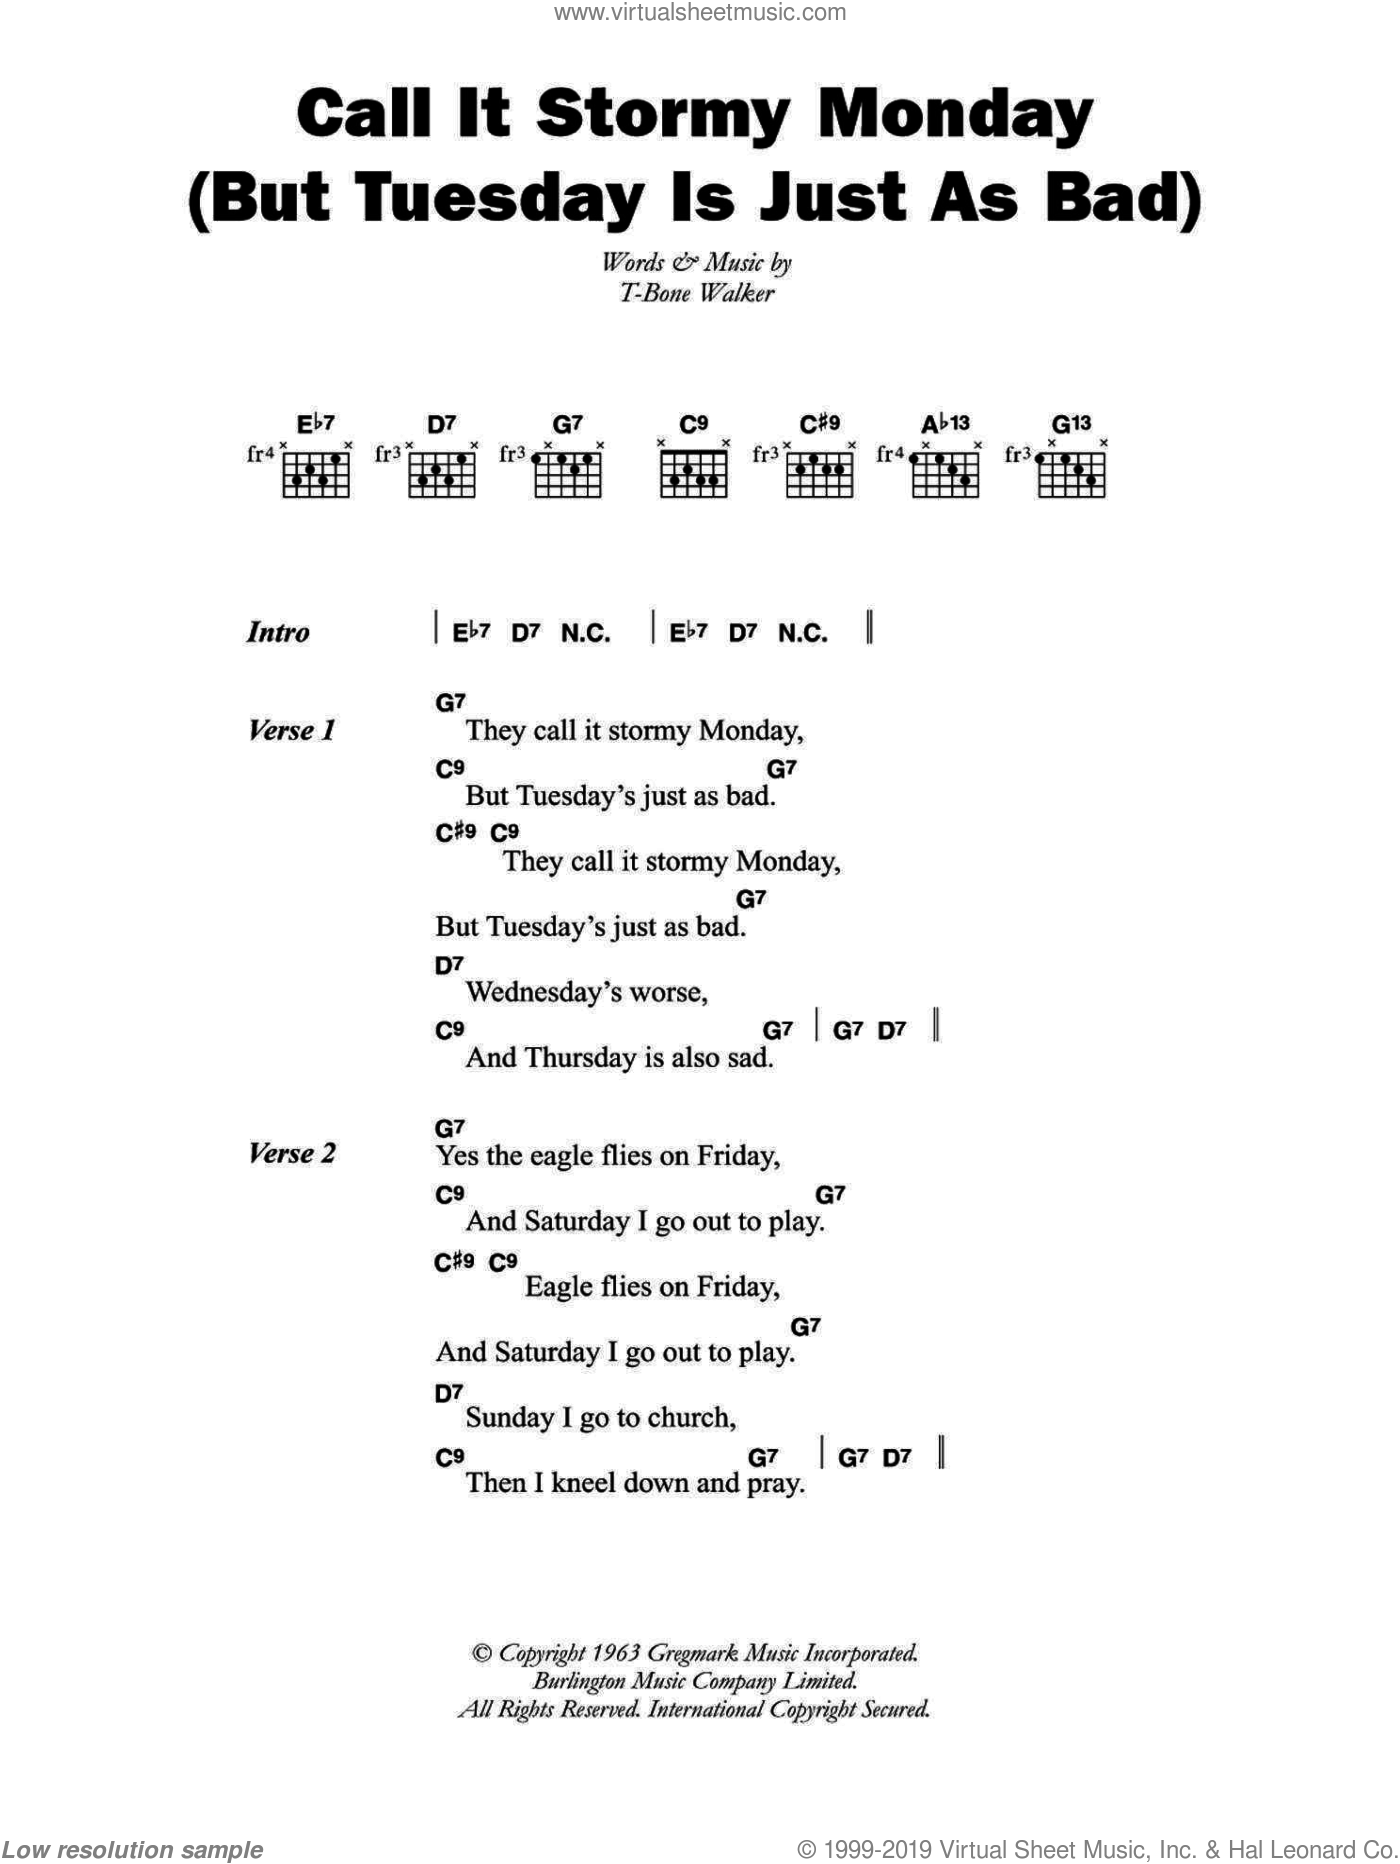 Call It Stormy Monday (But Tuesday Is Just As Bad) sheet music for guitar (chords) by Aaron 'T-Bone' Walker, intermediate skill level